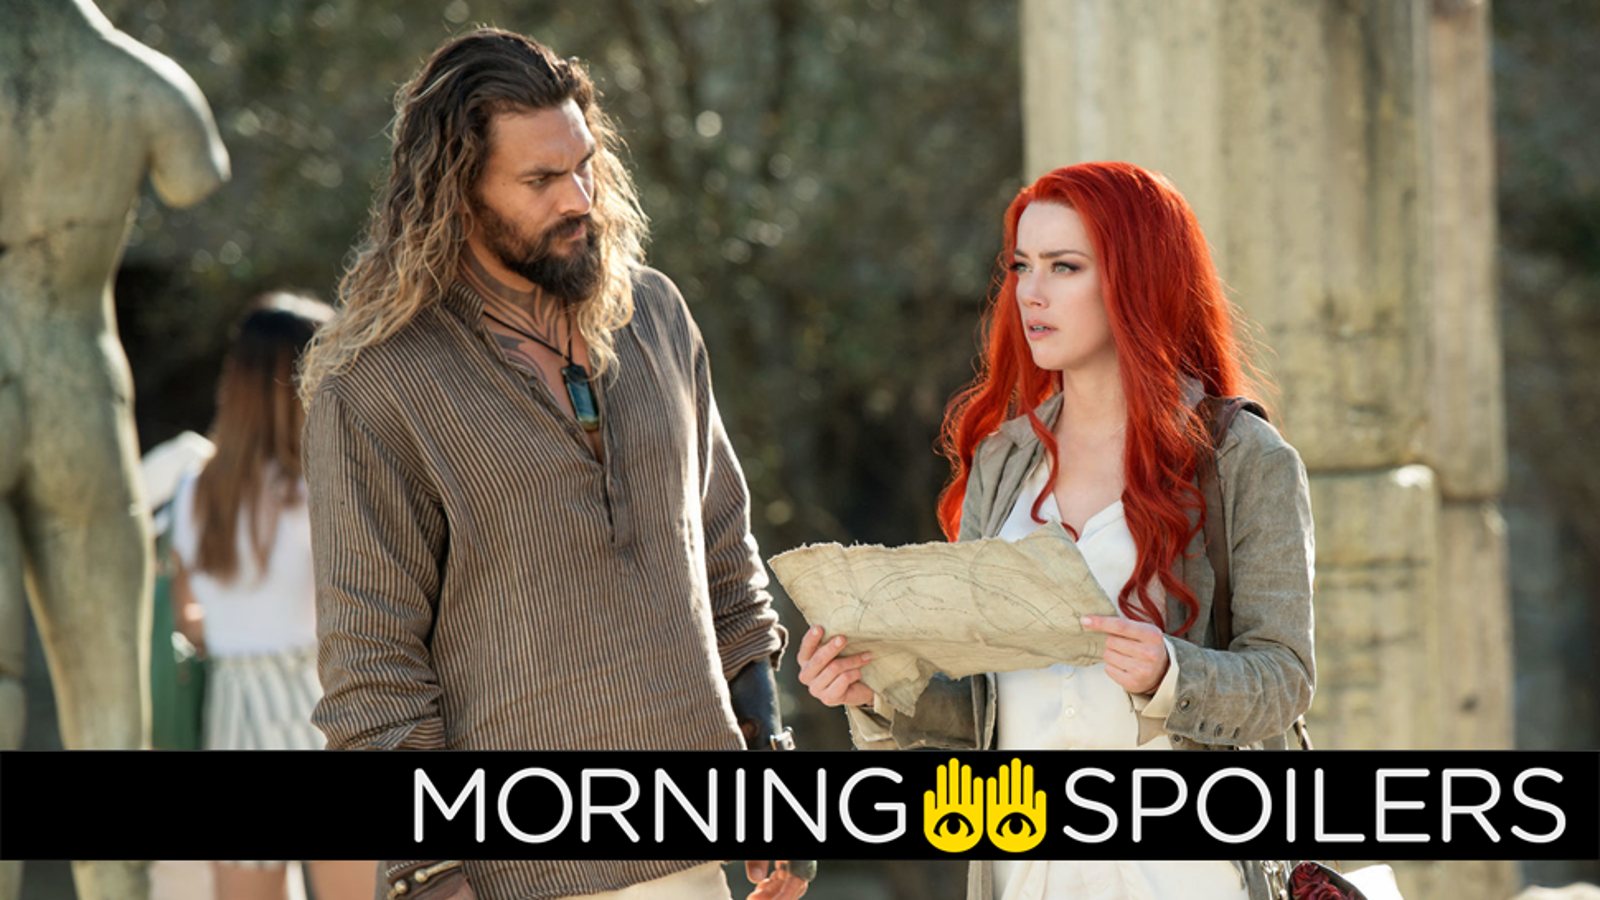 An Oddly Pukey Update From Aquaman, and Work Begins on the Picard Spinoff